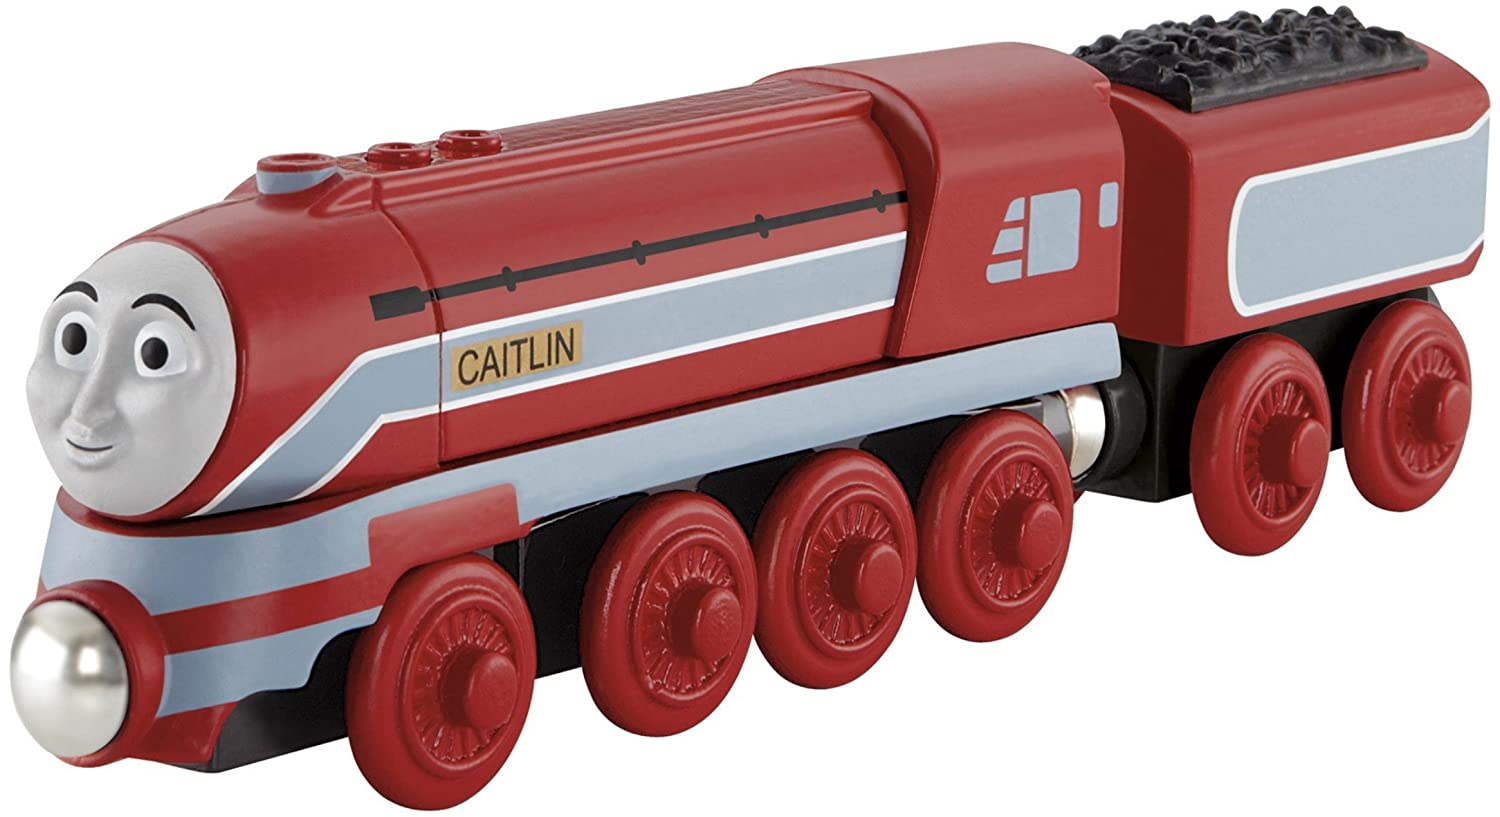 Thomas and Friends Wooden Railway Toy - Caitlin Engine - King of the Railway - Real Wood Thomas & Friends Y5856